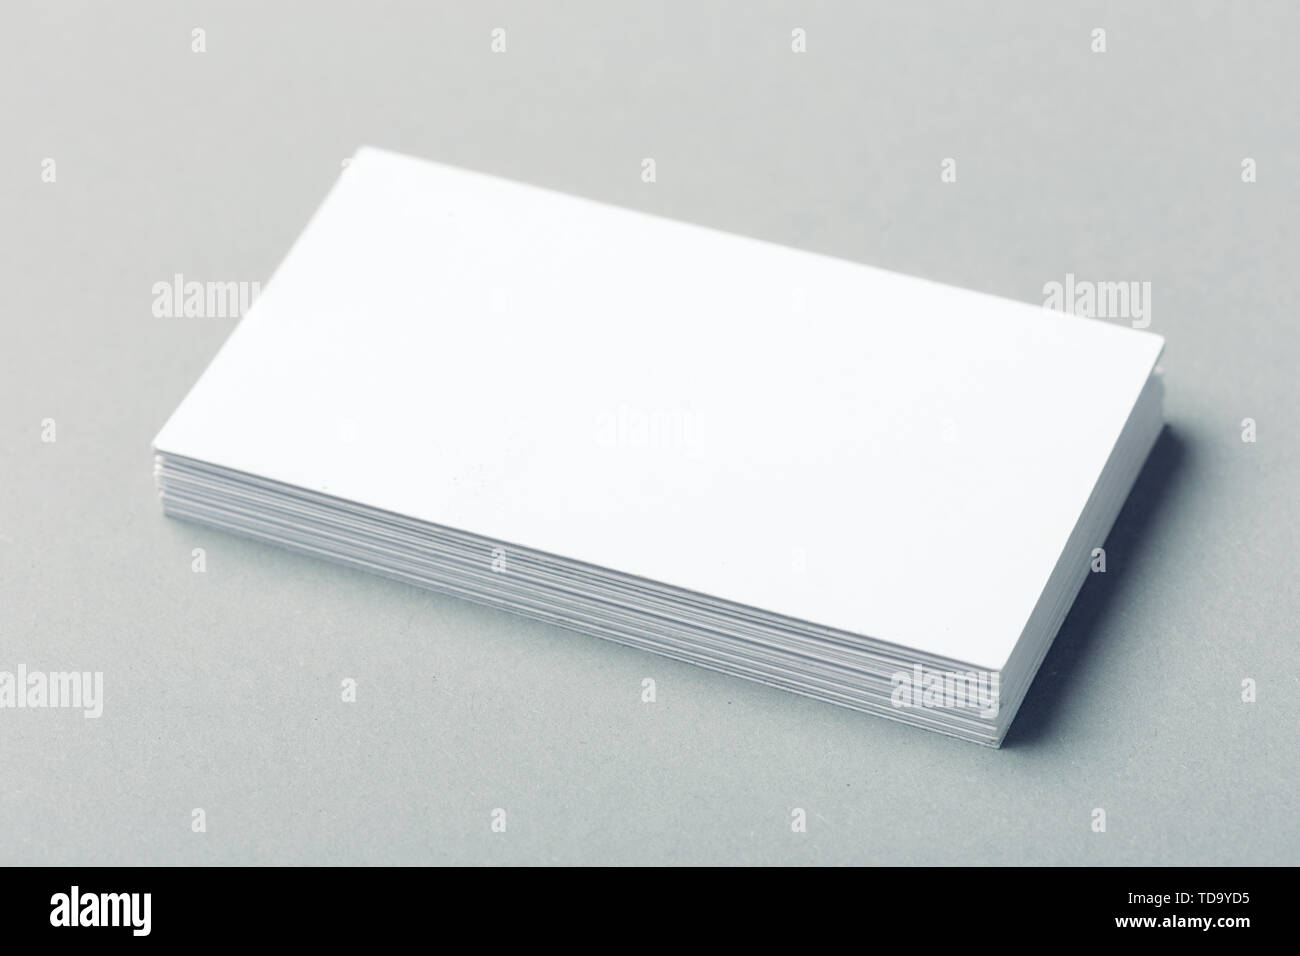 blank business cards on grey background - Stock Image